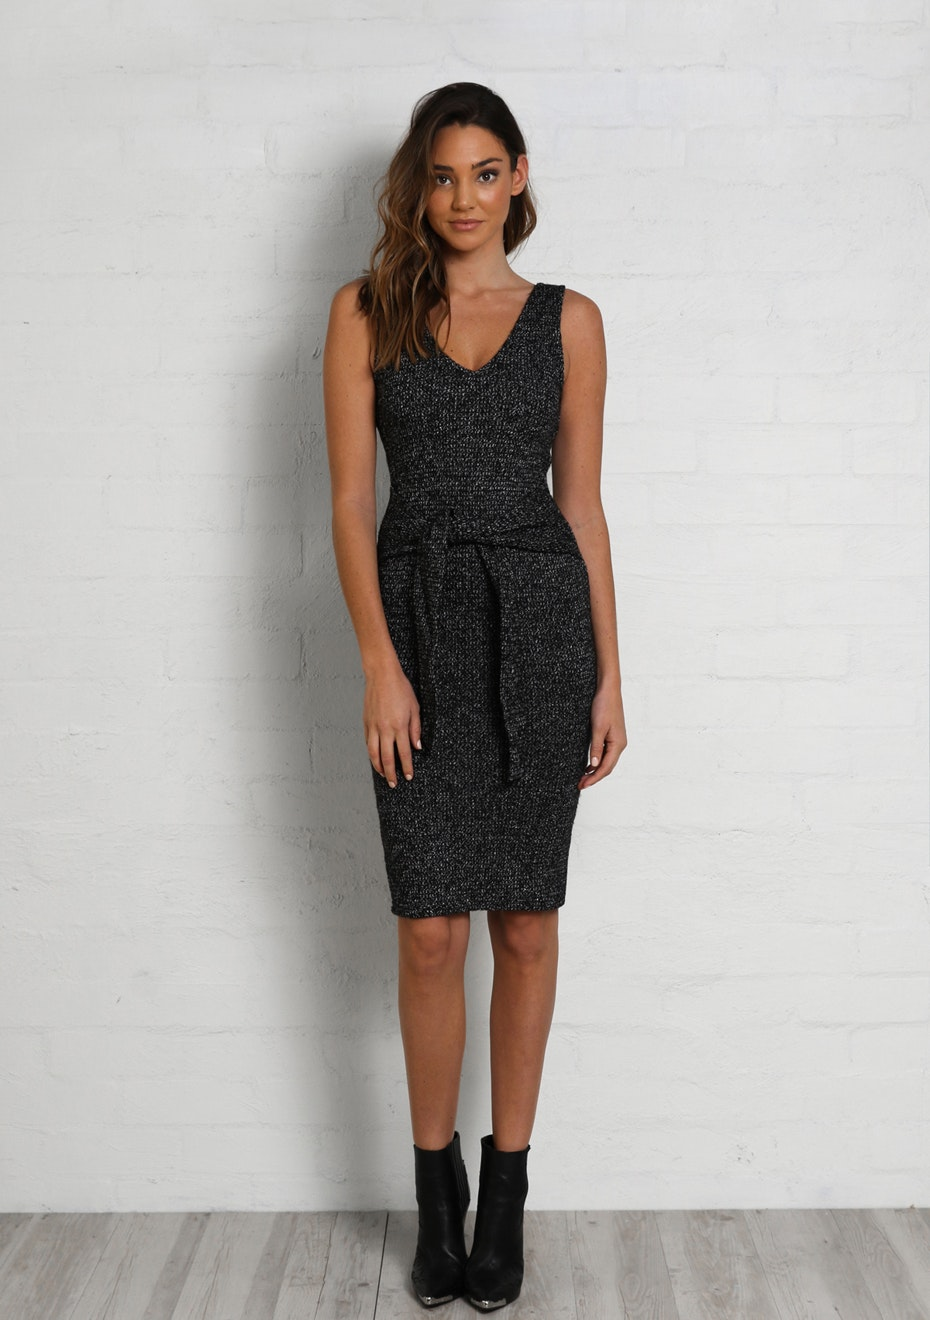 Madison - SANSA TIE DRESS - BLACK